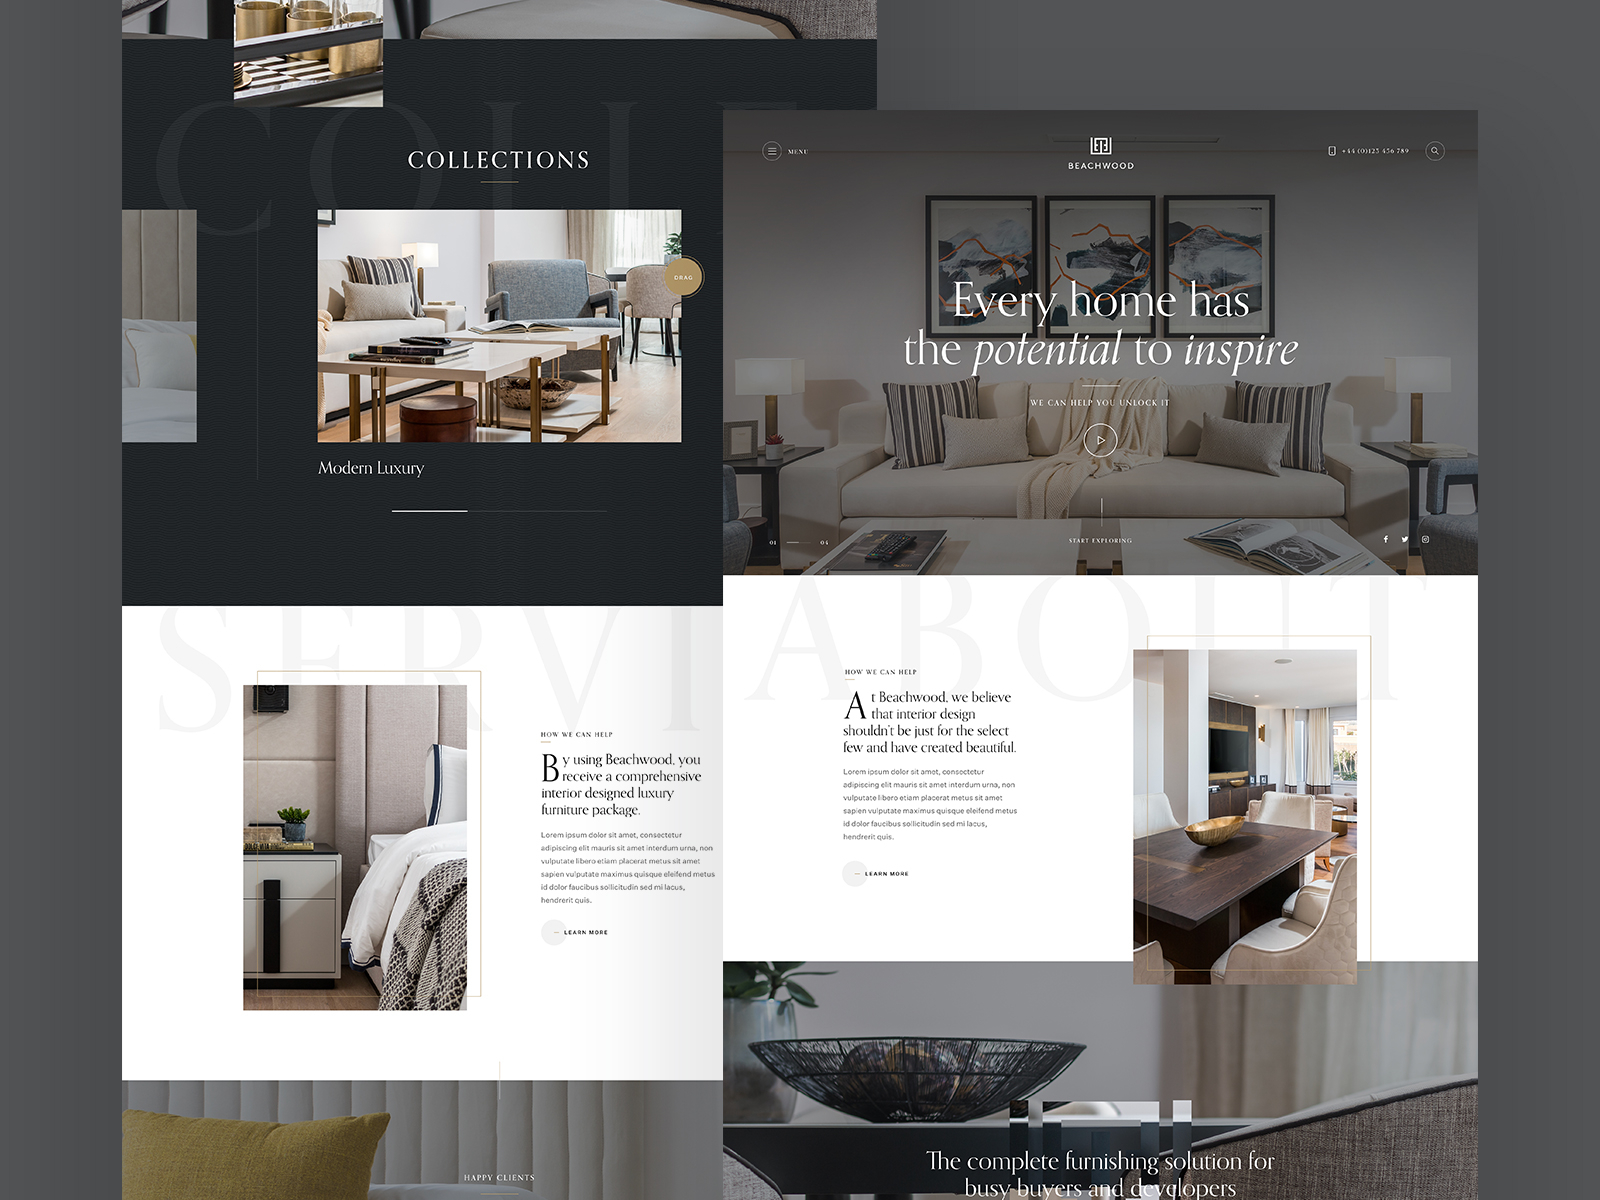 Interior Design Portfolio Website Example #2